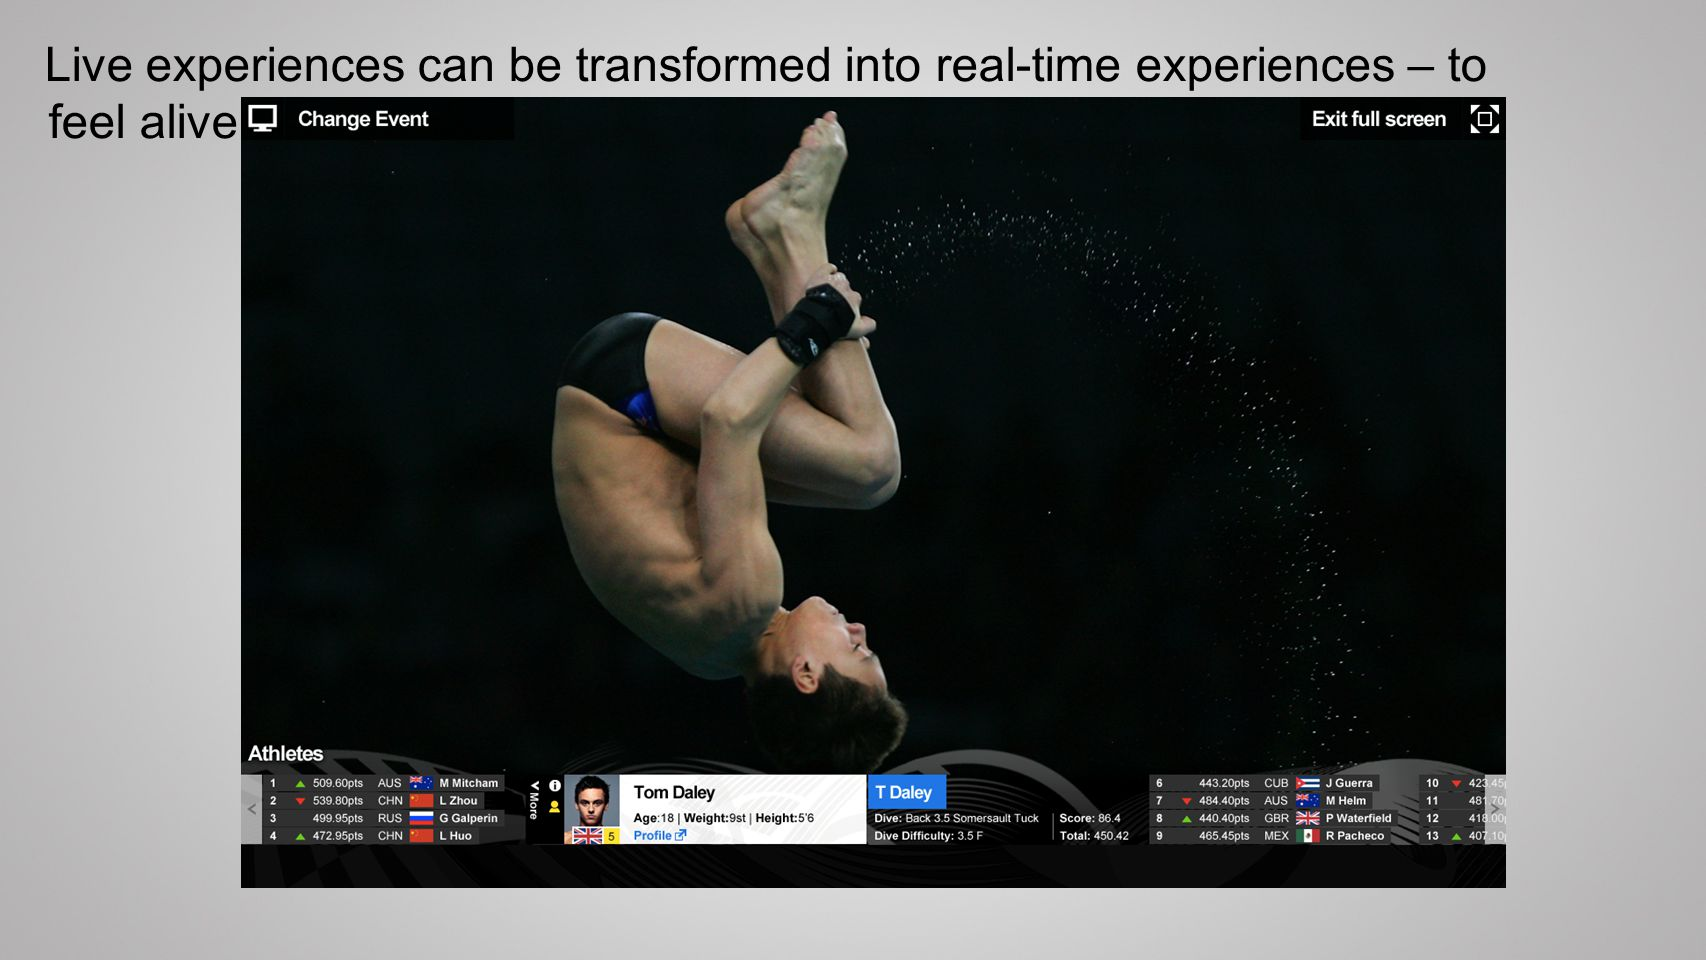 Live experiences can be transformed into real-time experiences – to feel alive